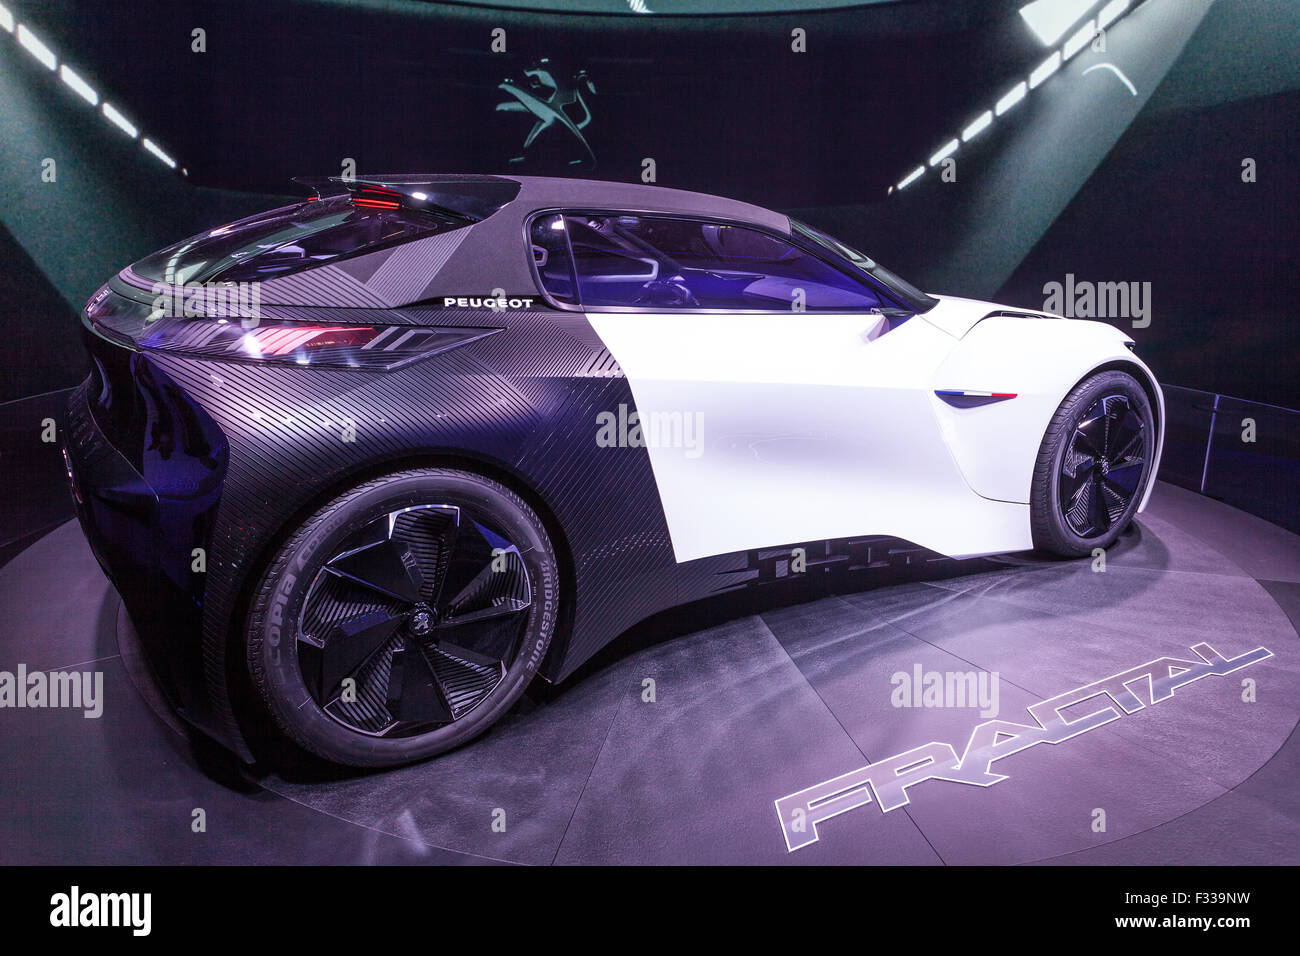 Peugeot Fractal Concept Car at the IAA 2015 - Stock Image